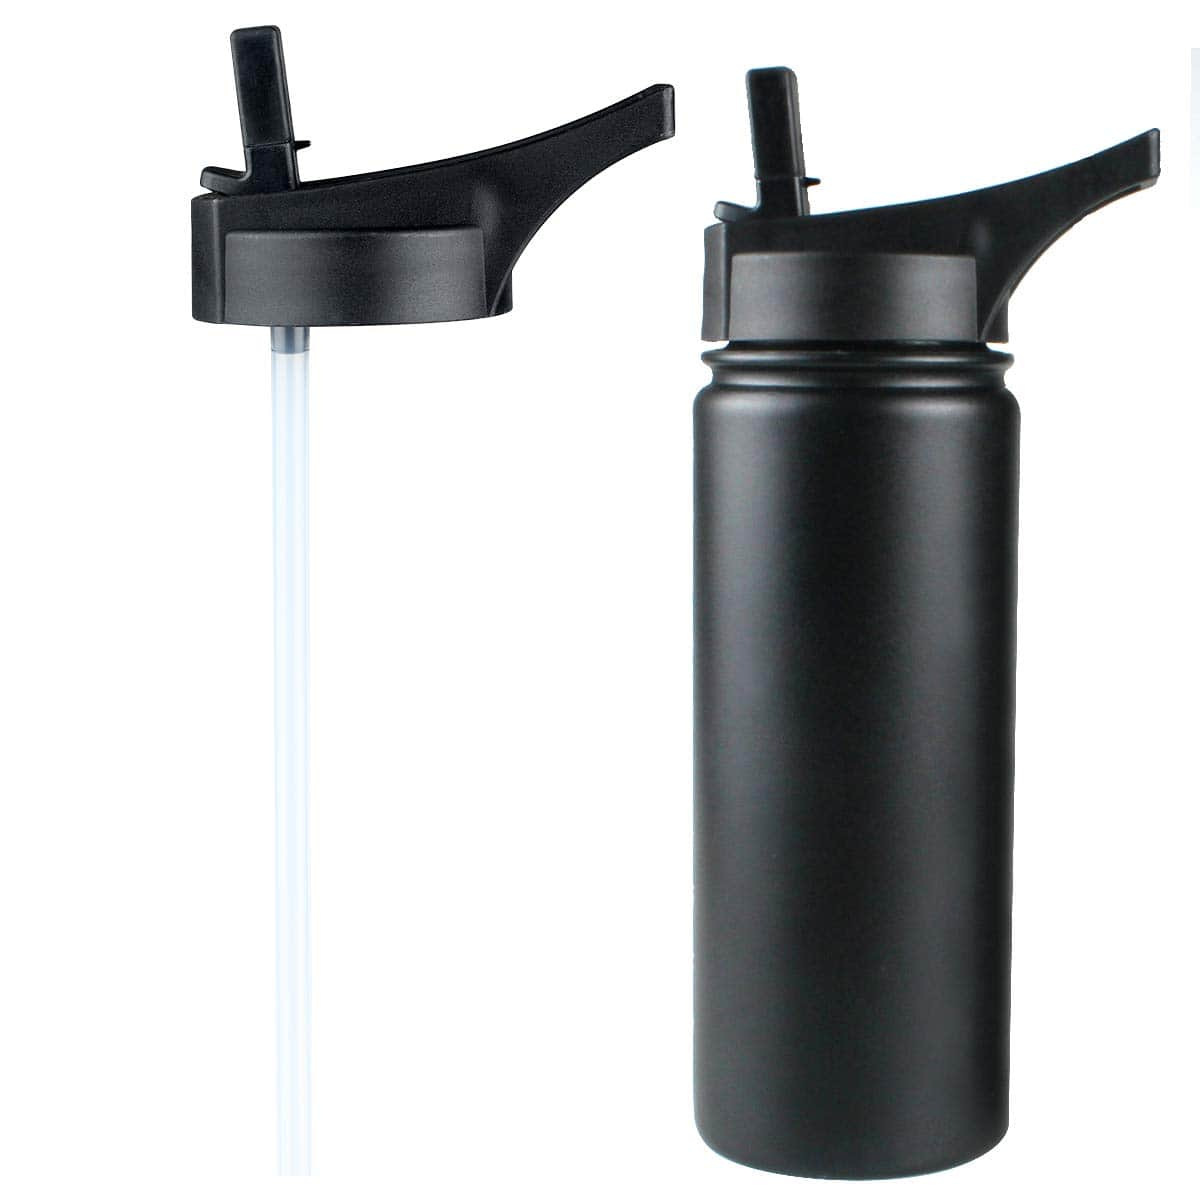 Straw Lids for Most Brands Wide Mouth Water Bottle $4.49 @Amazon